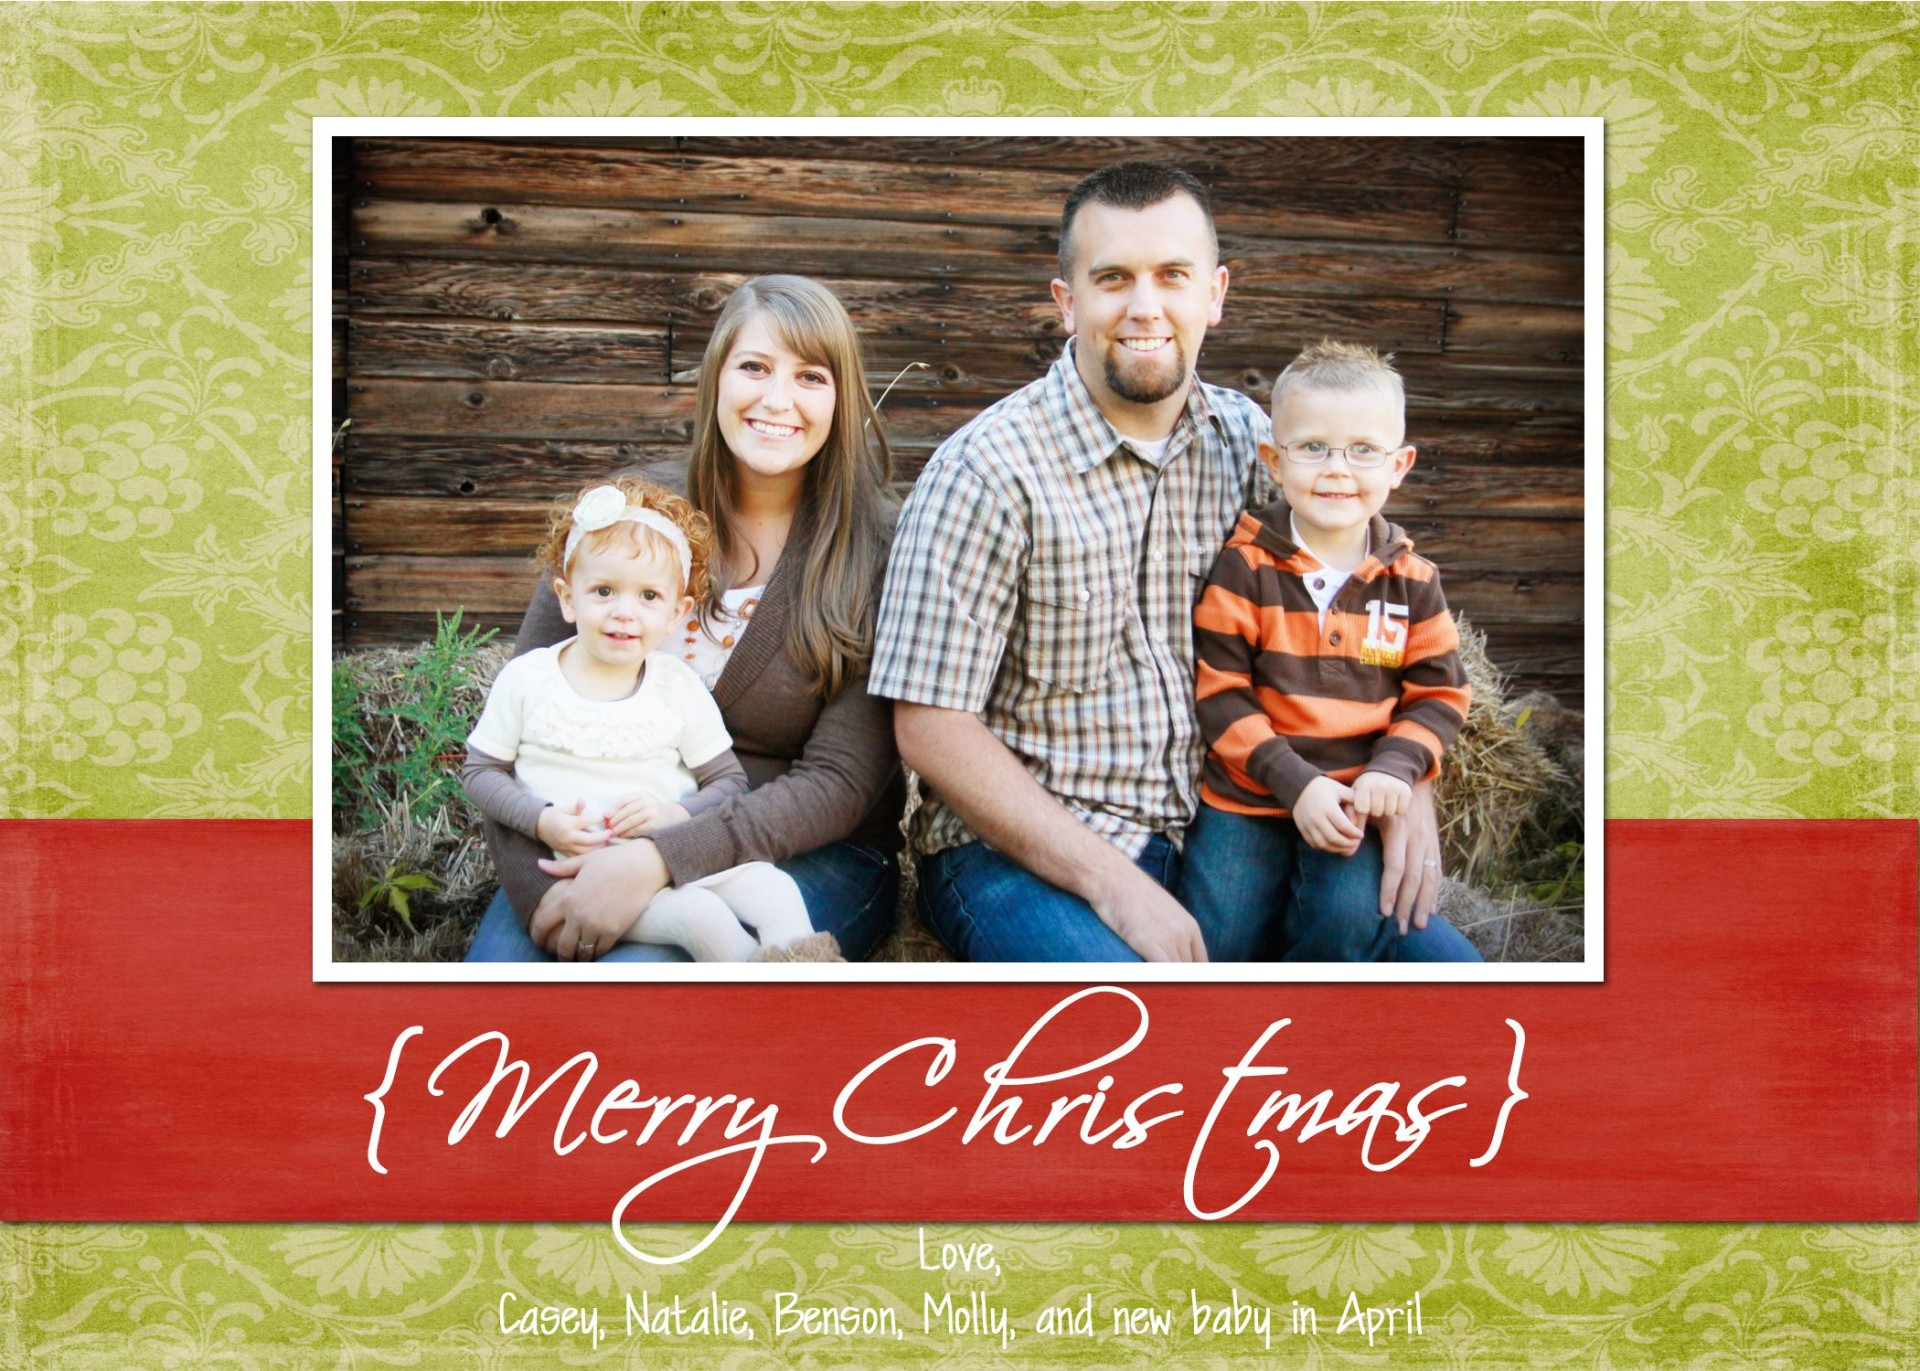 003 Magnificent Free Photo Christma Card Template Inspiration  Templates For Photoshop Online1920